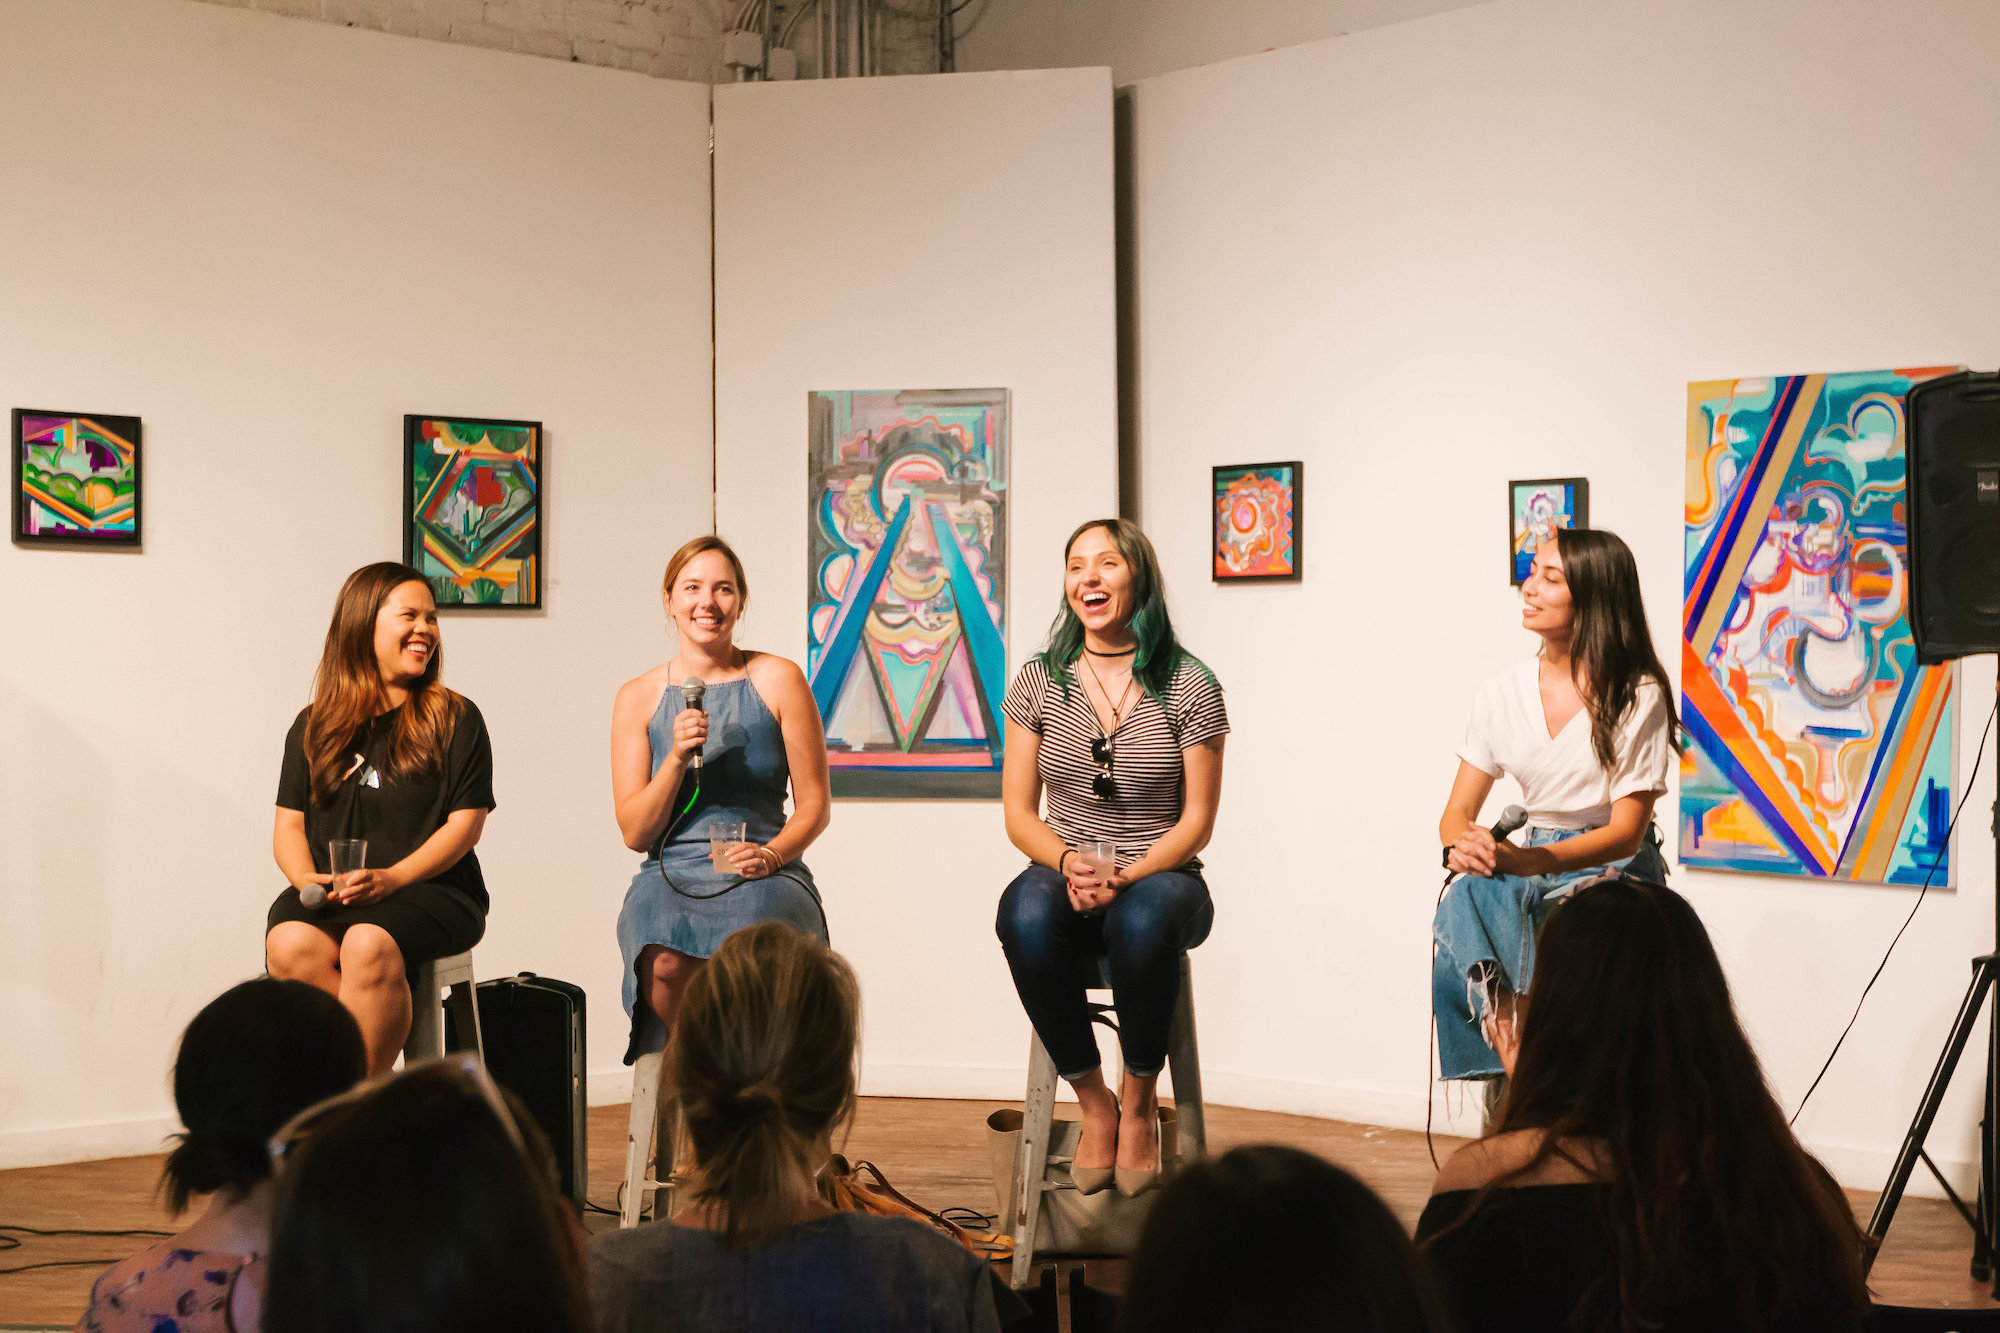 Intimate panel event featuring three female business owners | image by Lee Behrend